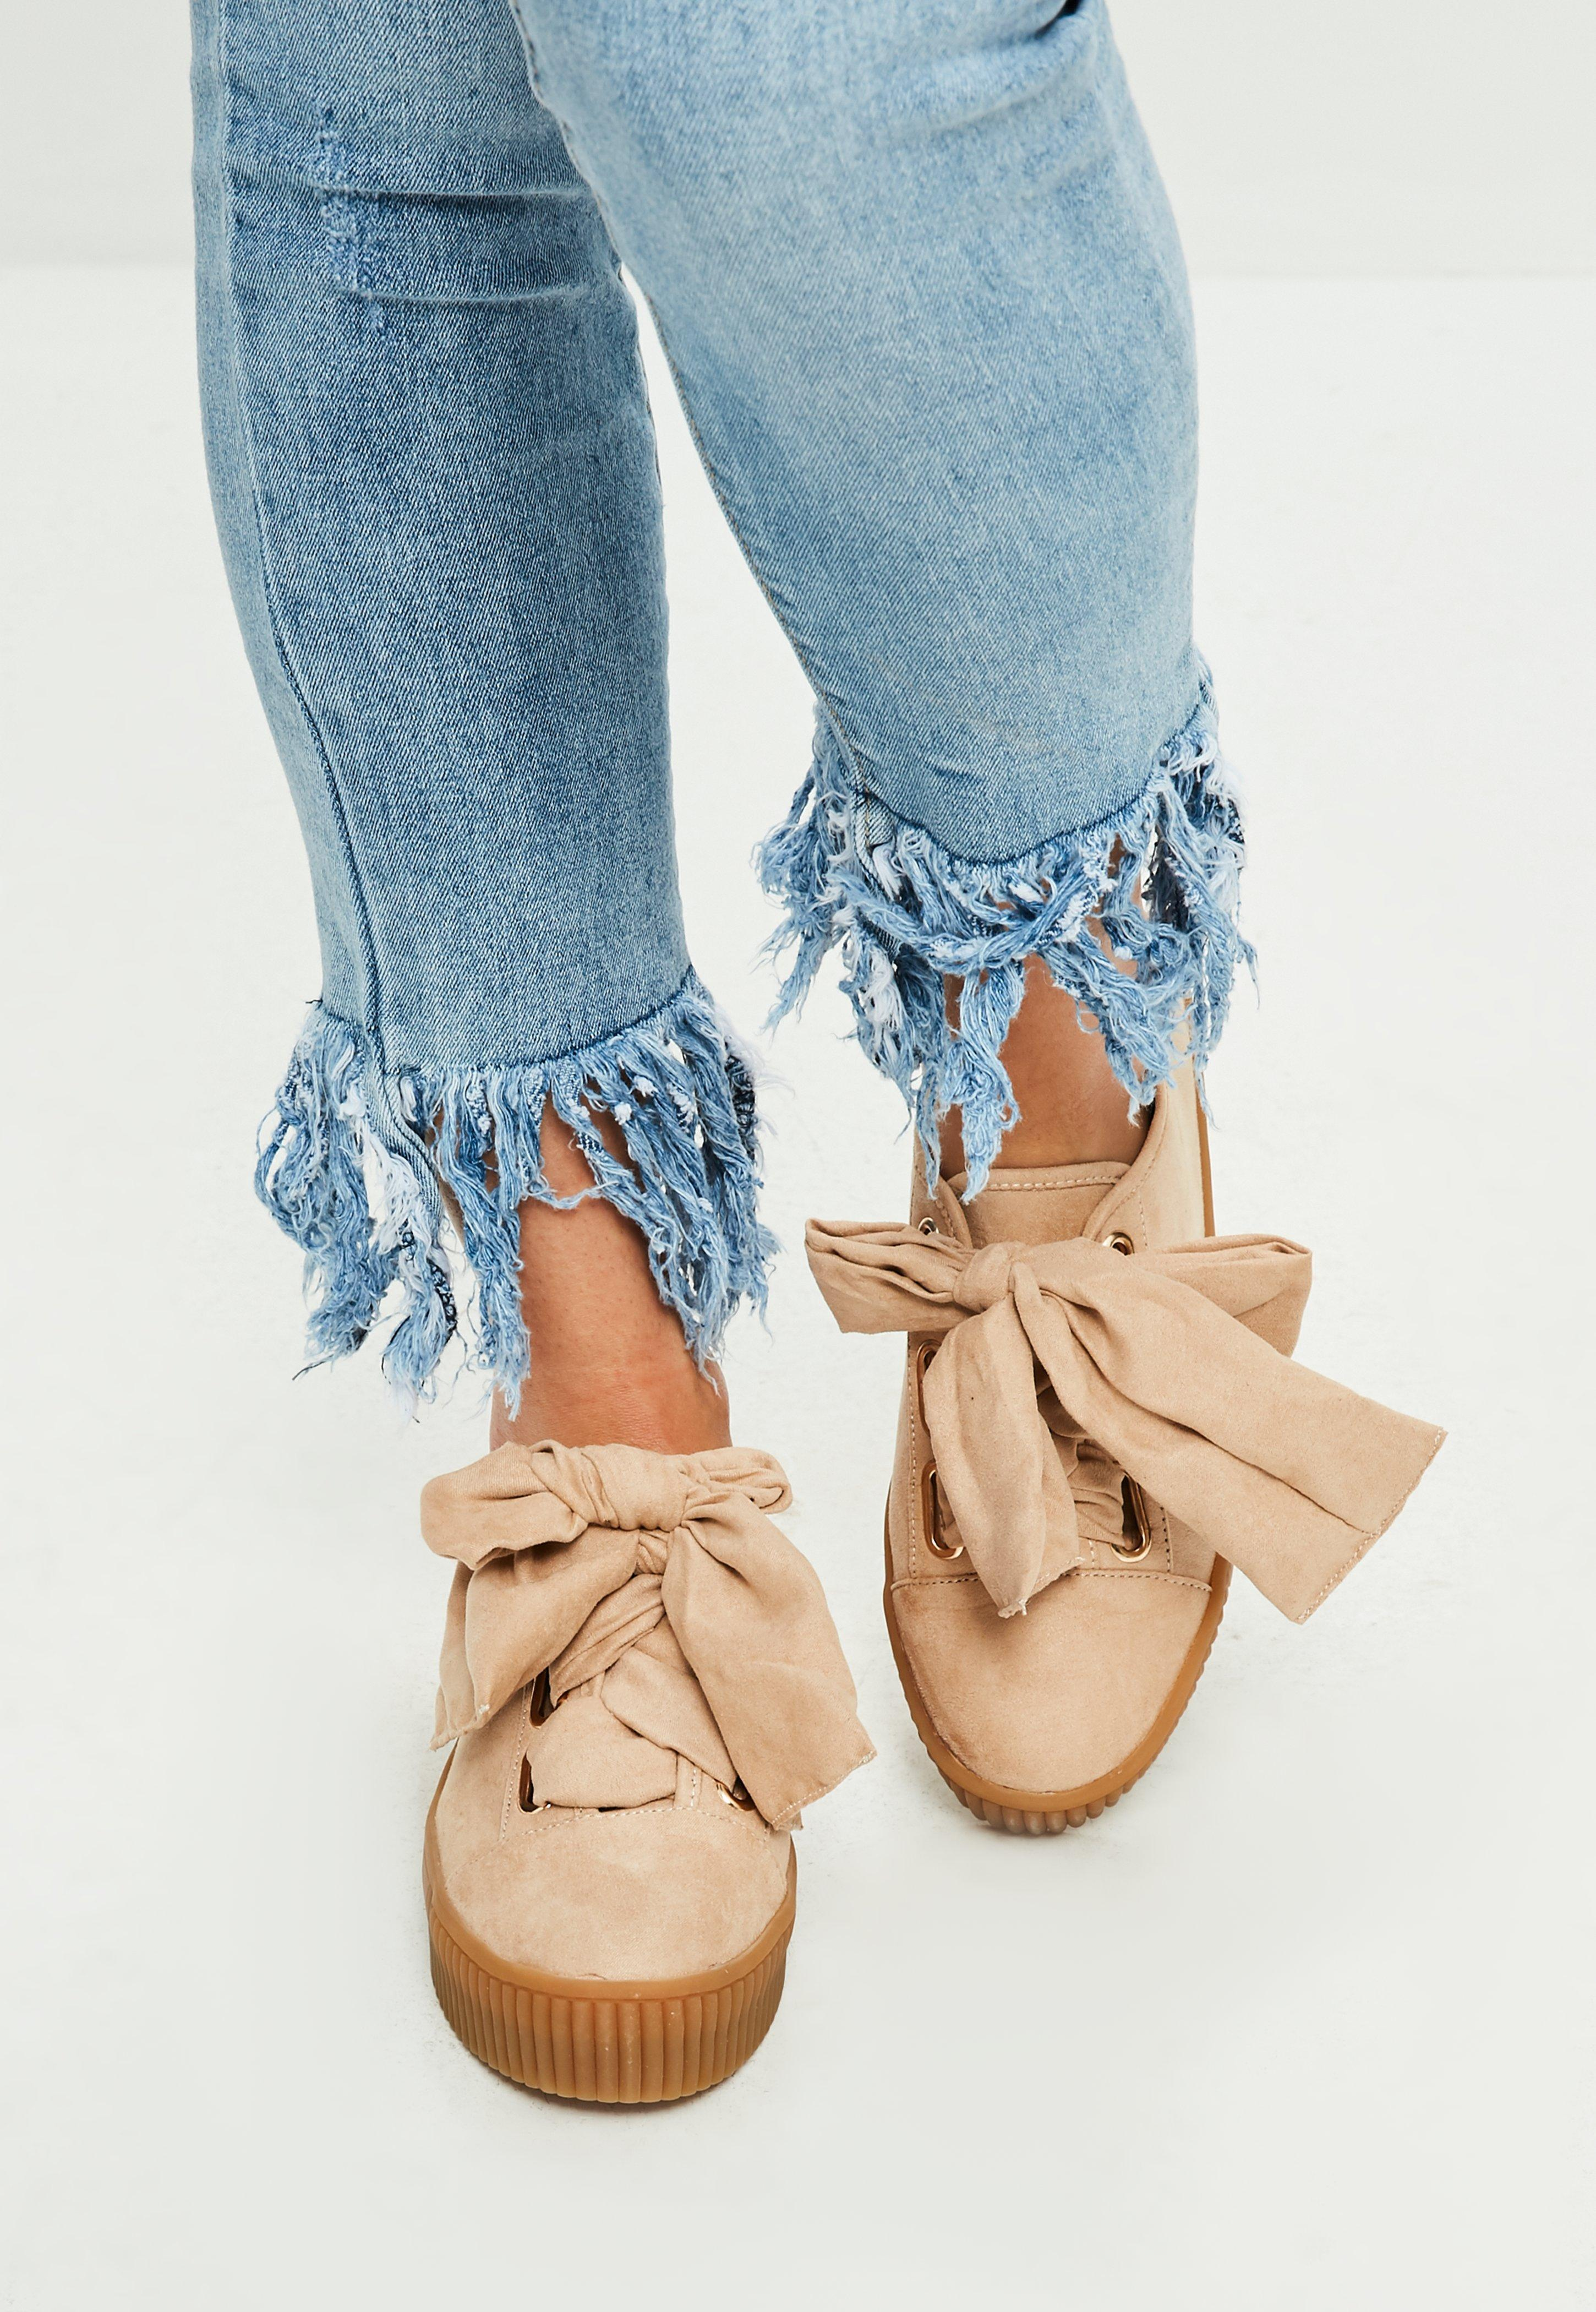 bb9322442 Missguided Nude Faux Suede Platform Sneakers in Blue - Lyst